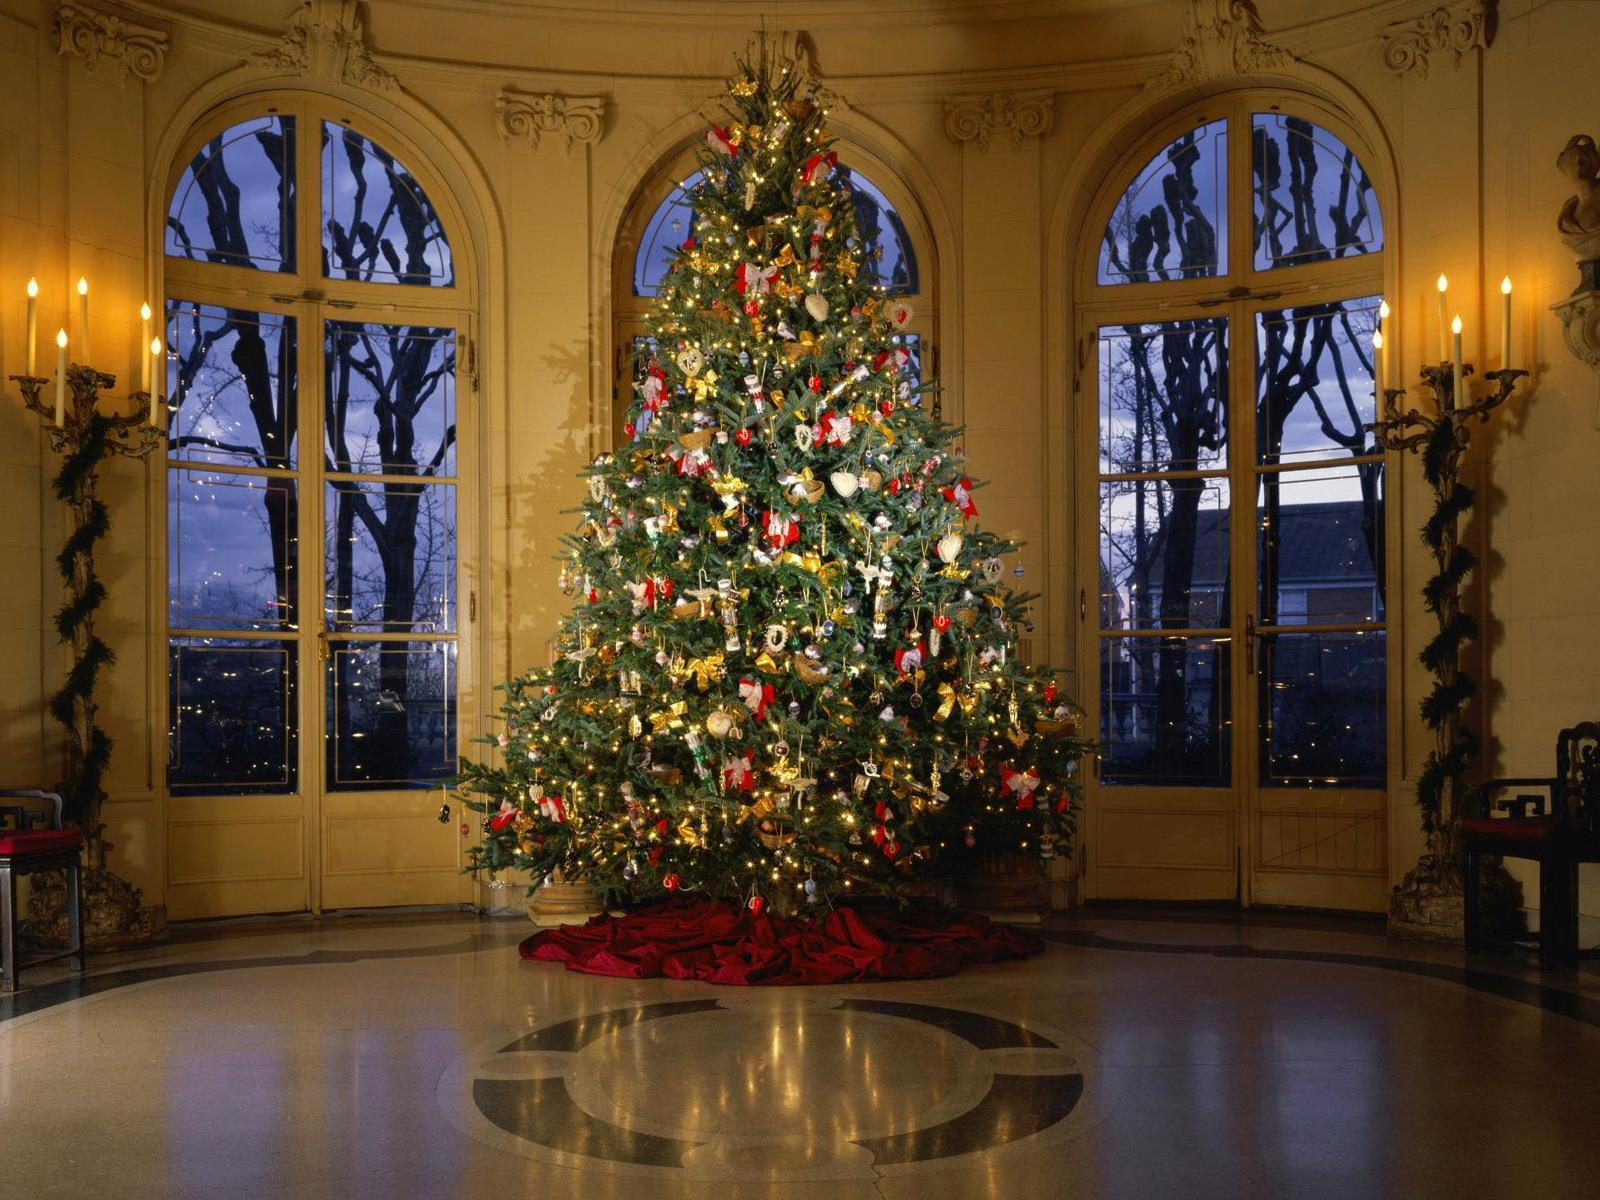 Christmas Tree in the House Wallpapers for Desktop